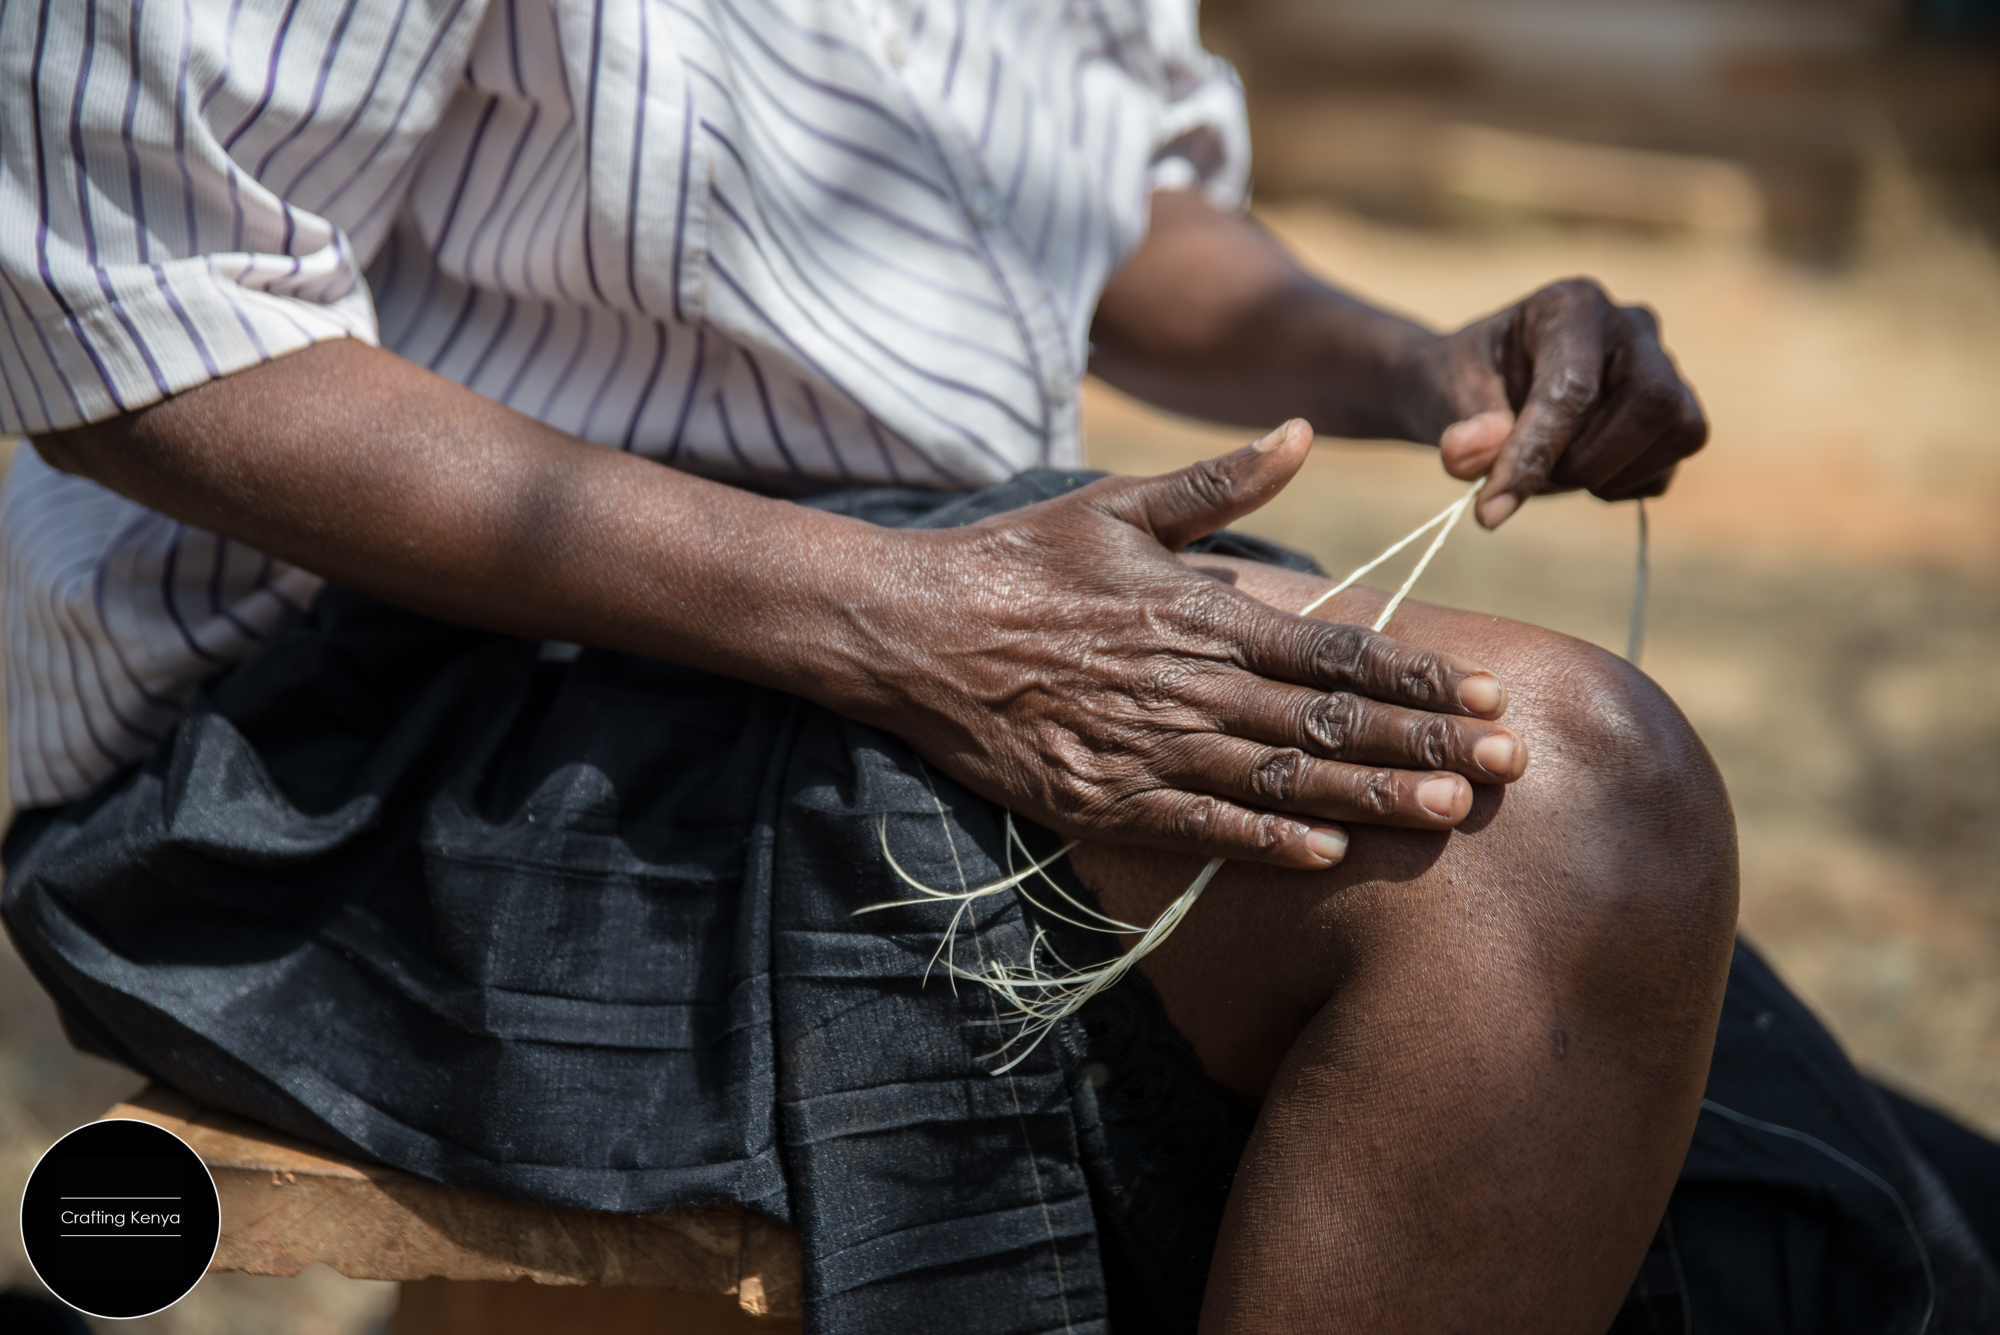 CraftingKenya_2014-09-11_Ukambani_Yatta basket weaving_011.jpg